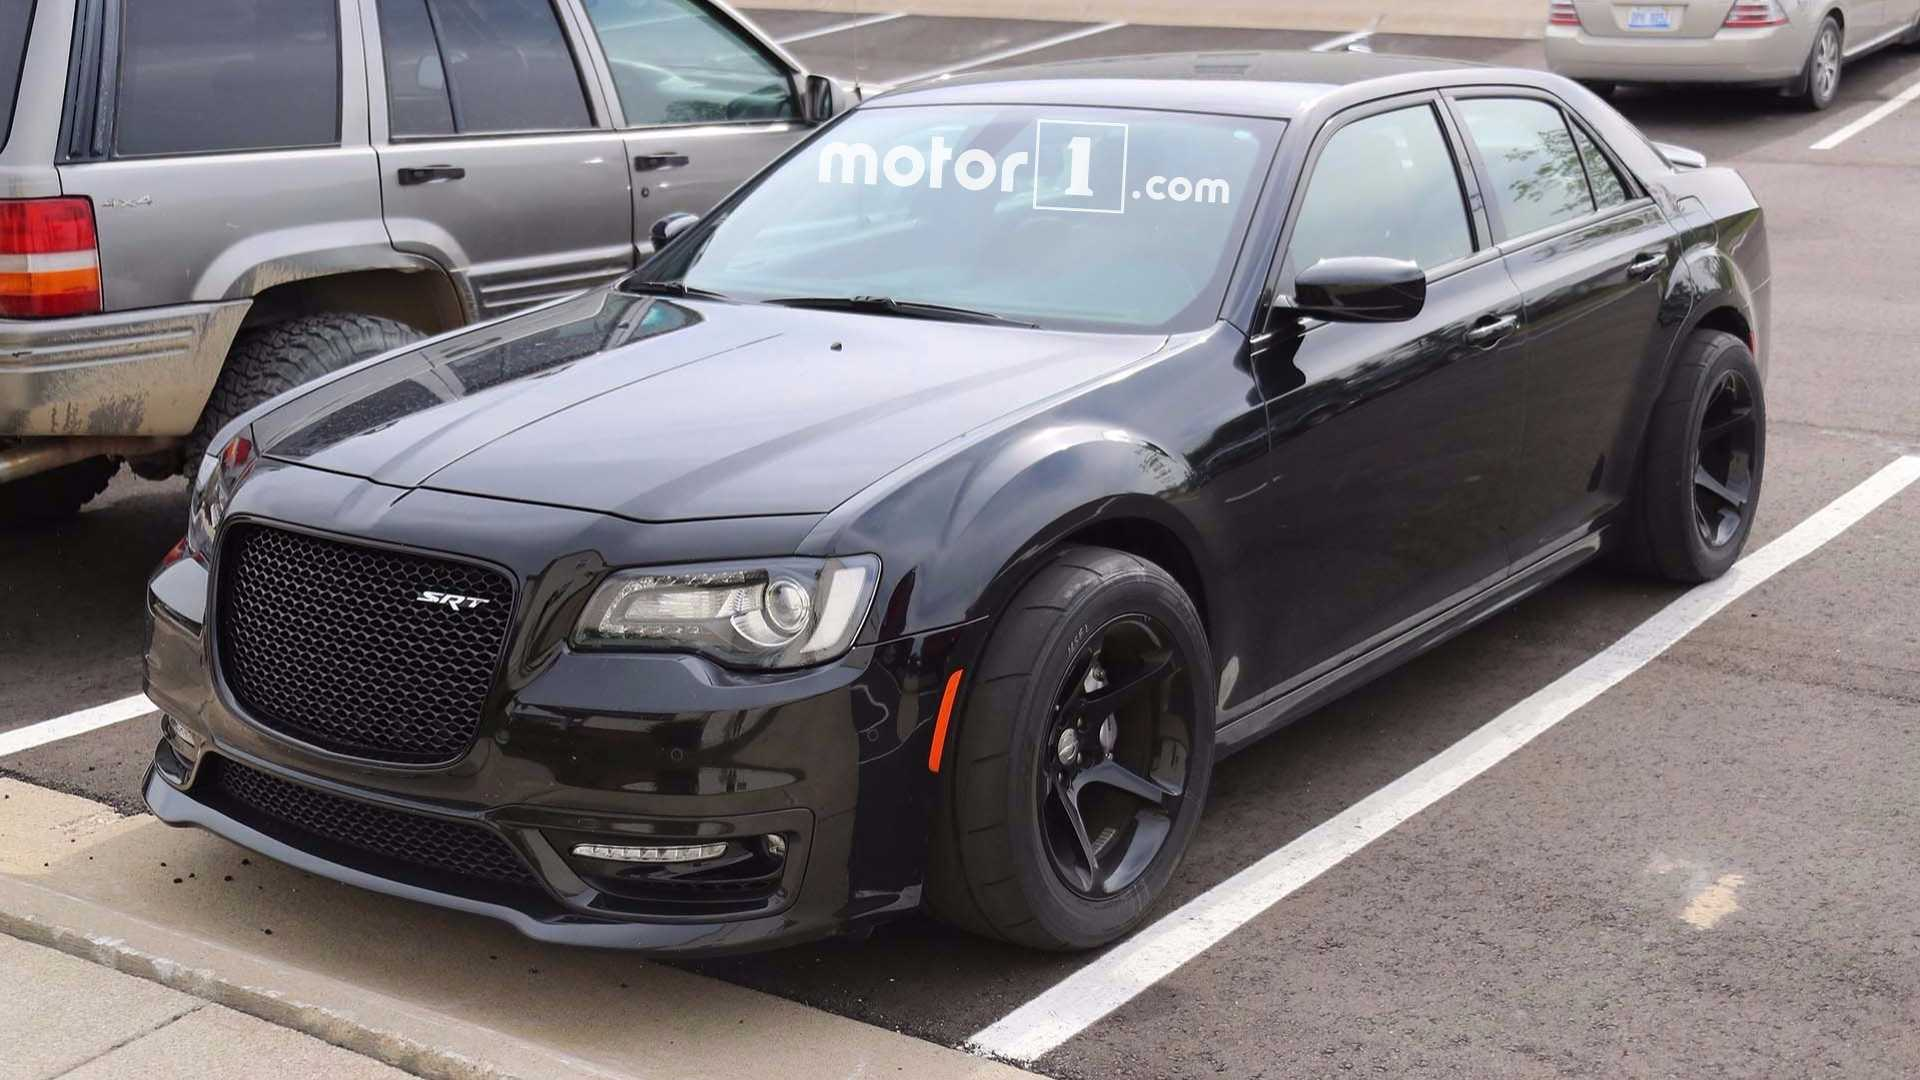 Hellcat All The Things Chrysler 300 Spied With Telltale Clues